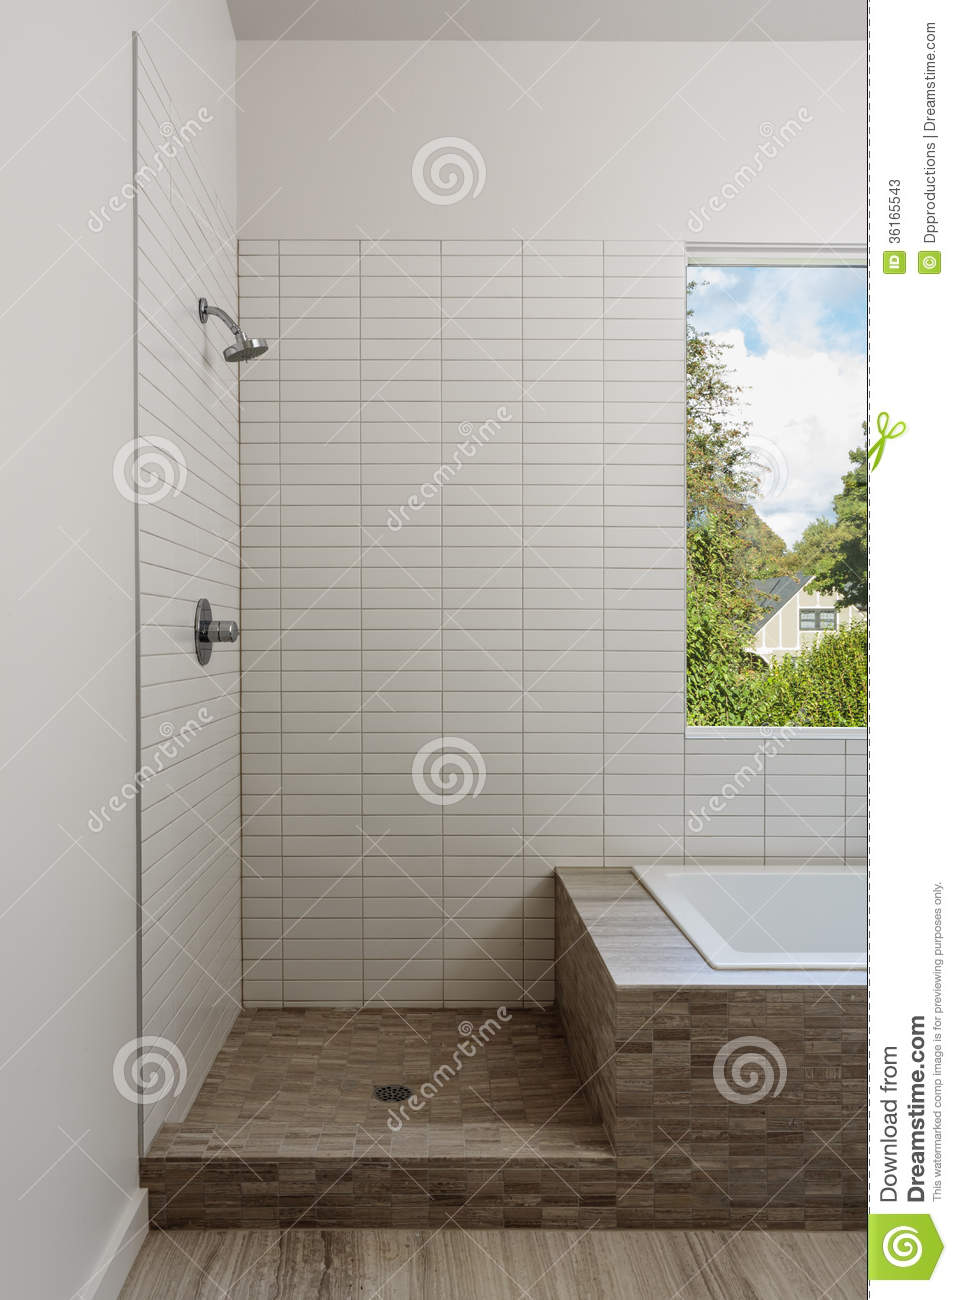 Open Shower And Bathtub In A Modern Home Stock Image